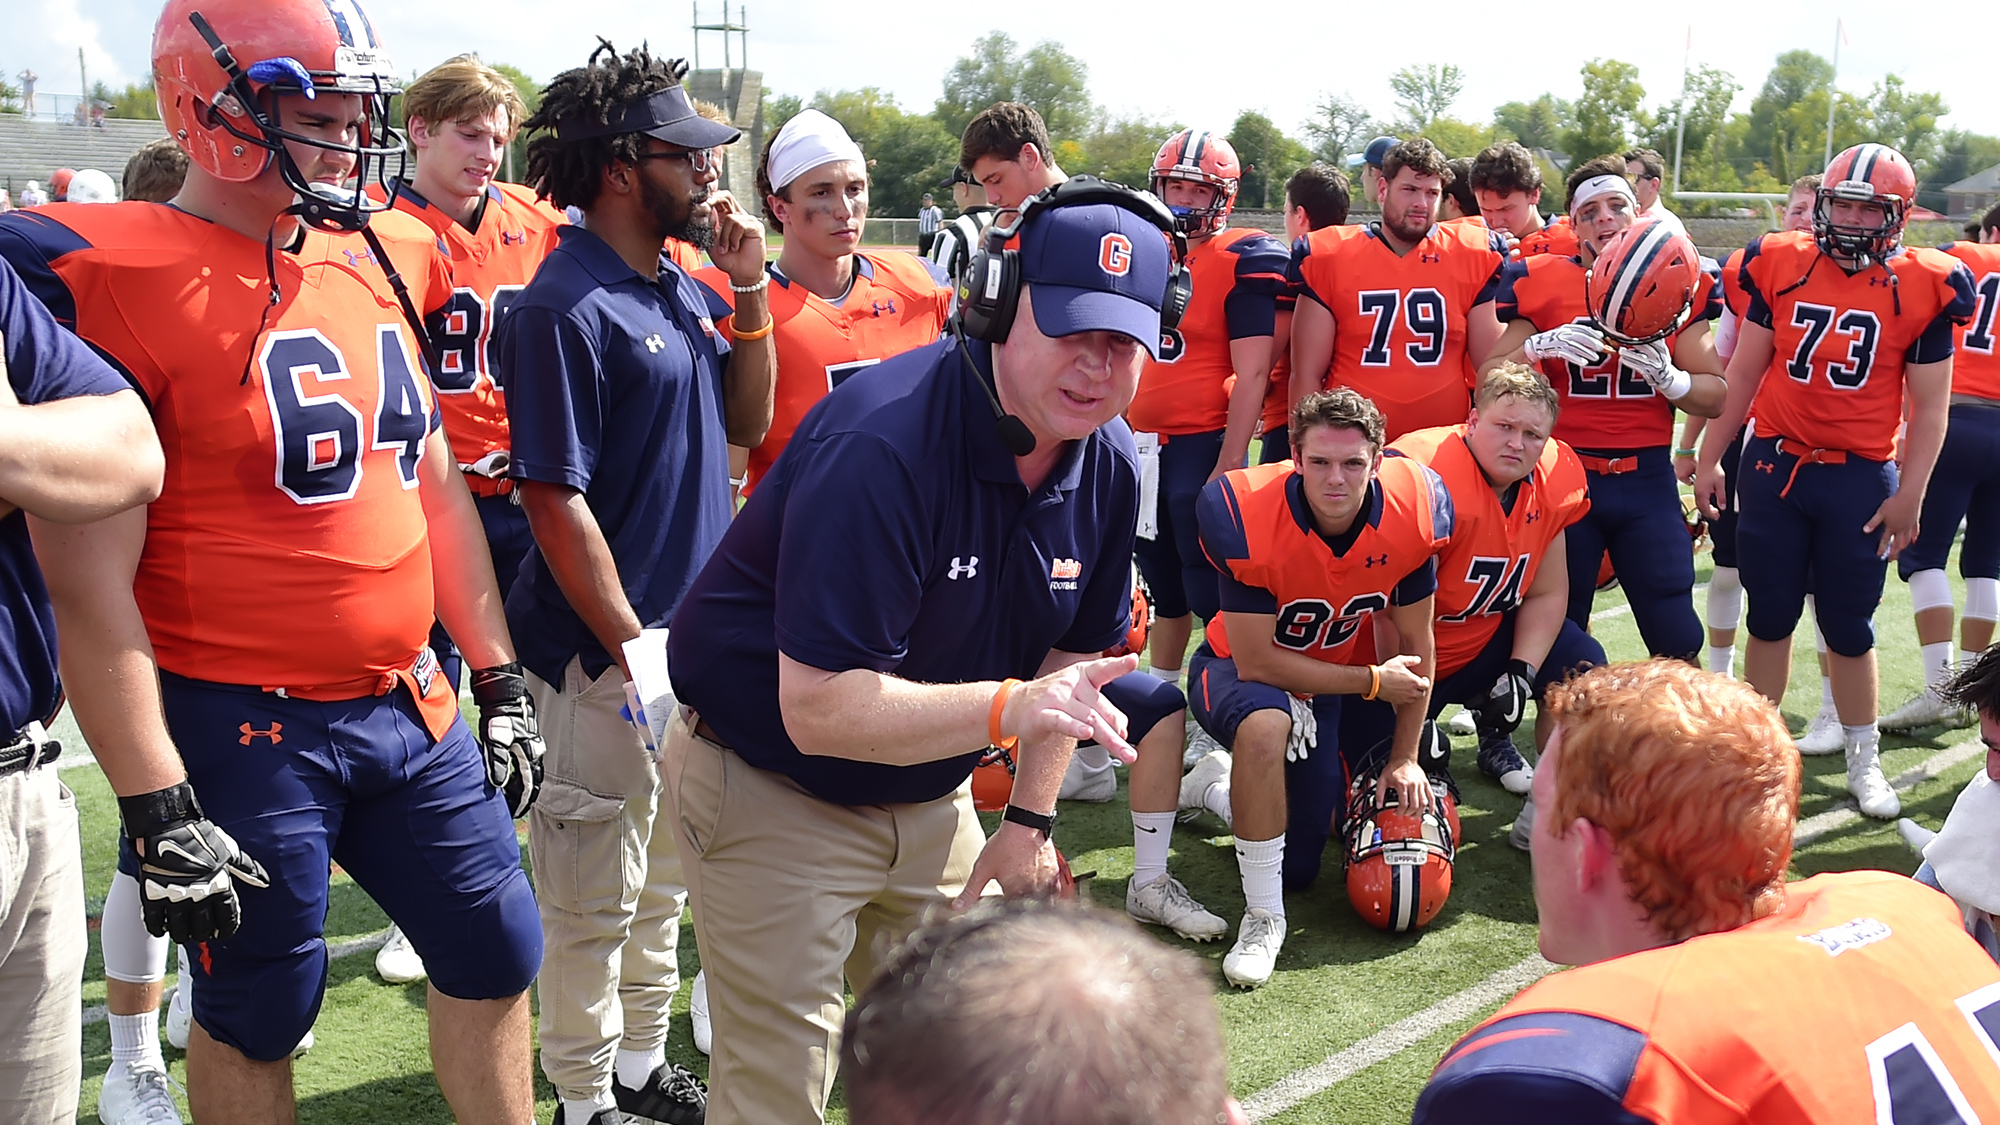 Kevin Burke has left the Gettysburg College football program (Photo courtesy of Gettysburg College Athletics)